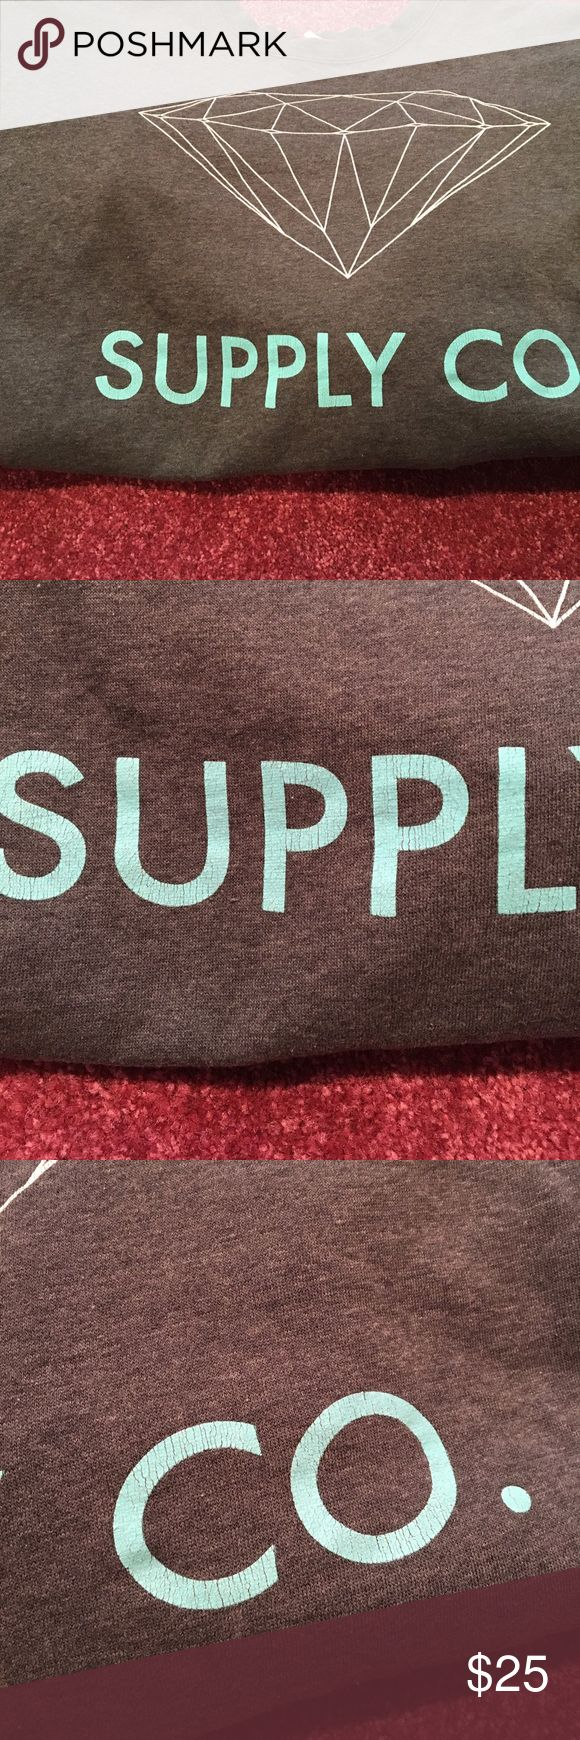 Men's Diamond Supply Co. Sweatshirt Men's size Xl Diamond Supply Company sweatshirt. The letters and the diamond are cracking a little bit see pictures but the sweatshirt still has a lot of life left. 24 inches long and 44 inches in the chest. Diamond Supply Co. Other